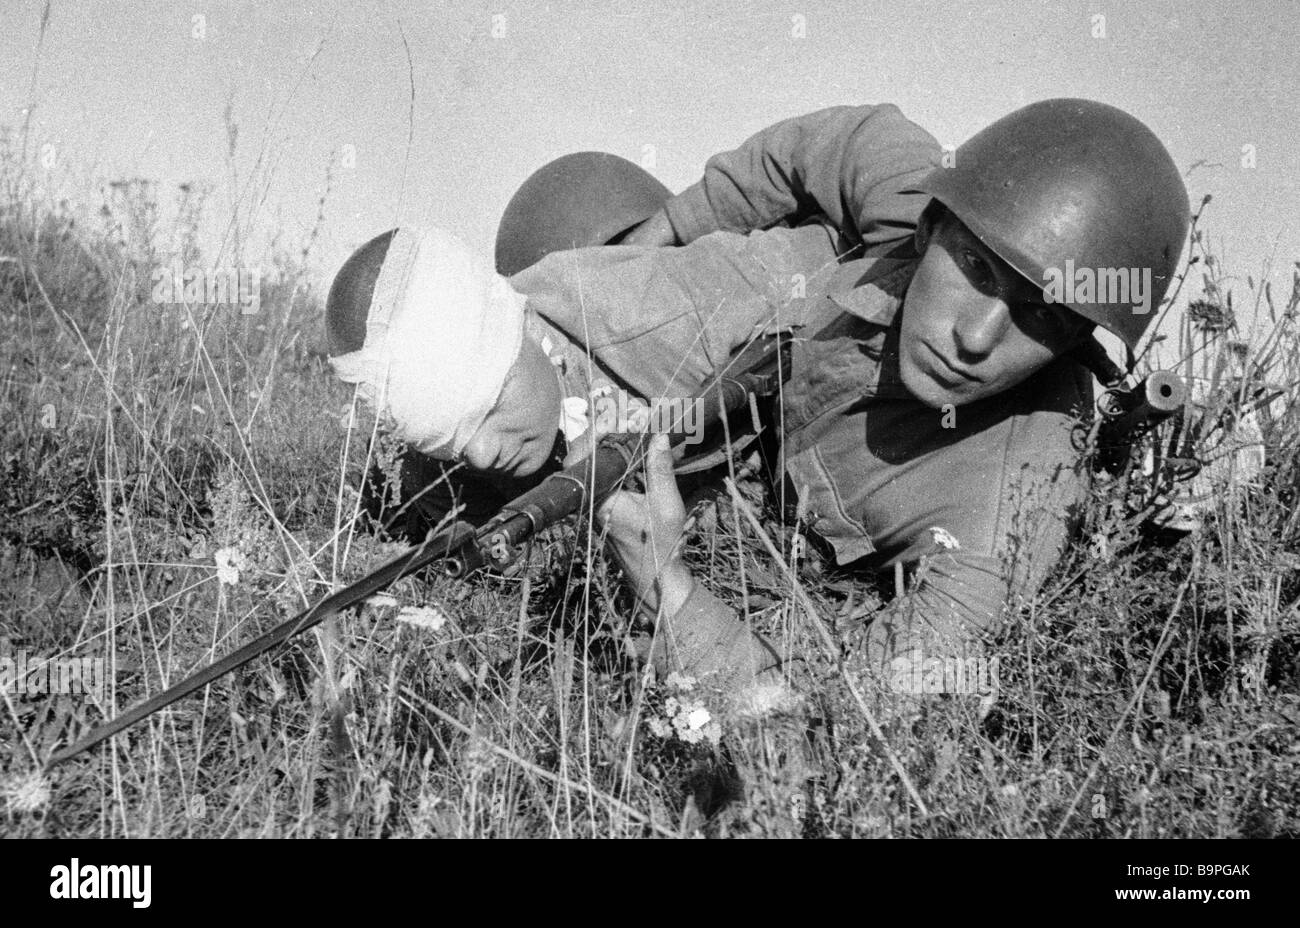 Removing a wounded soldier from the battlefield in the central front during the WWII years - Stock Image